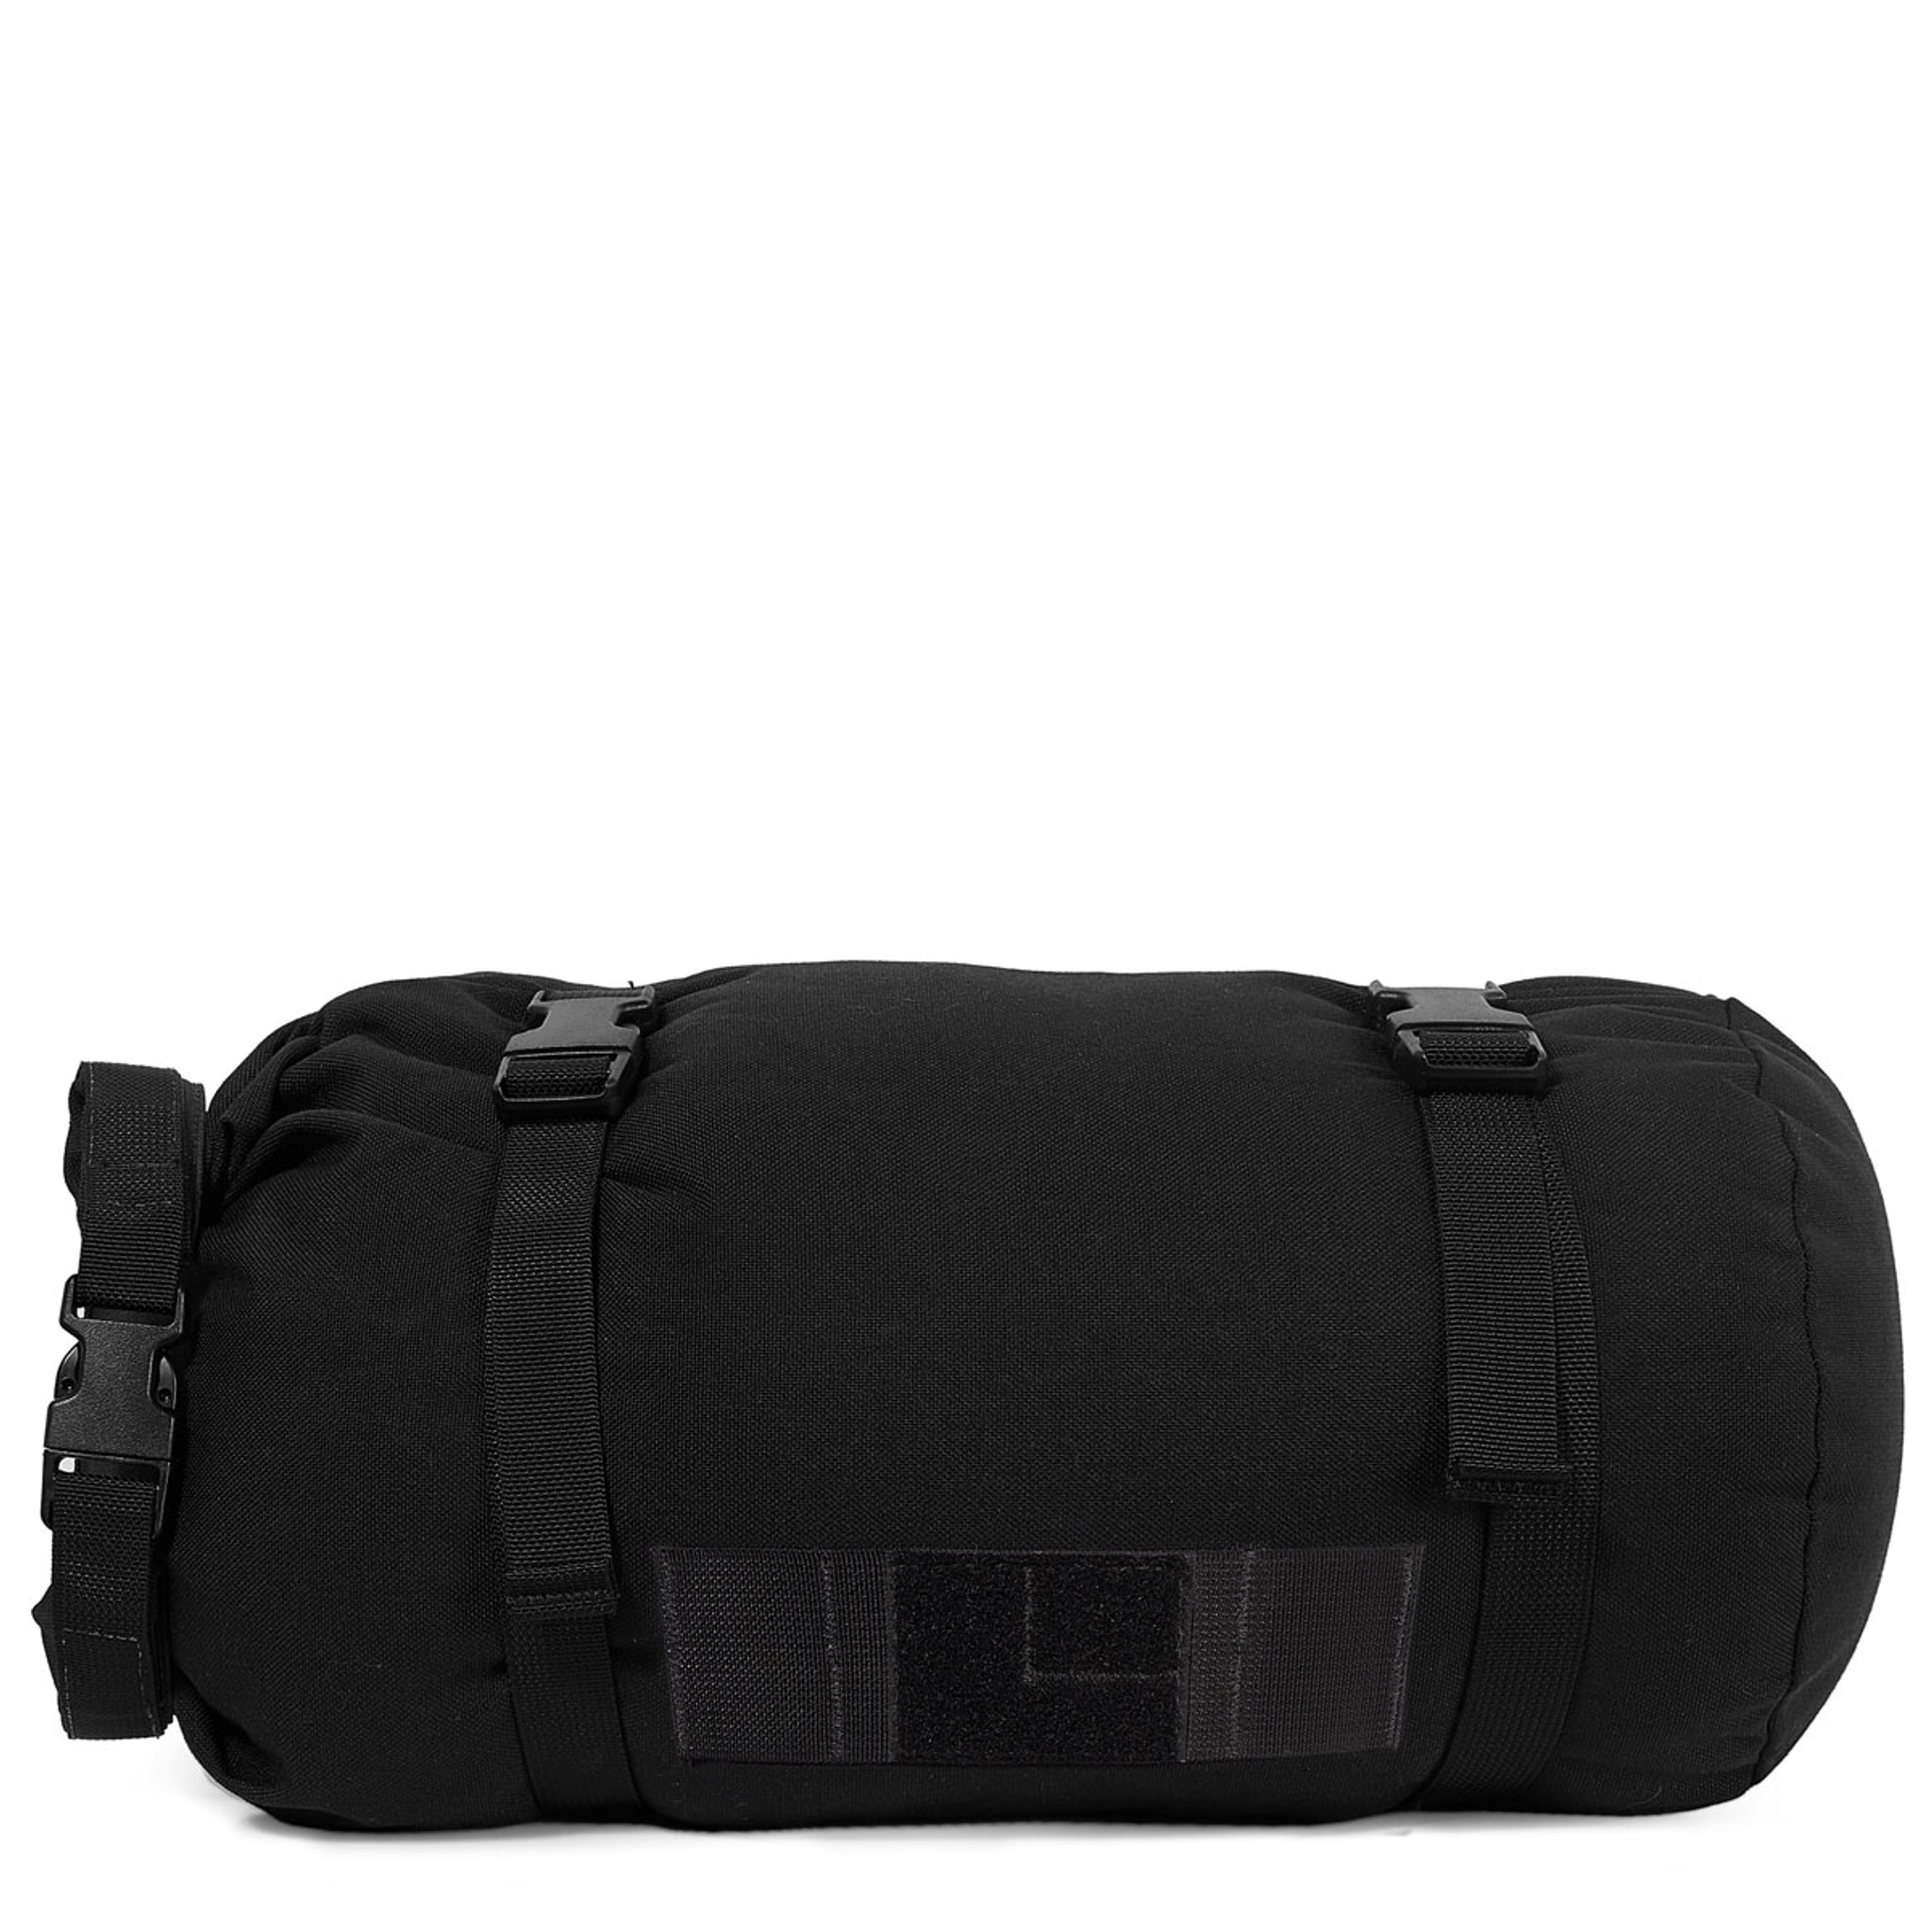 Compression Tough Bag Goruck Hand Rolling Compressed